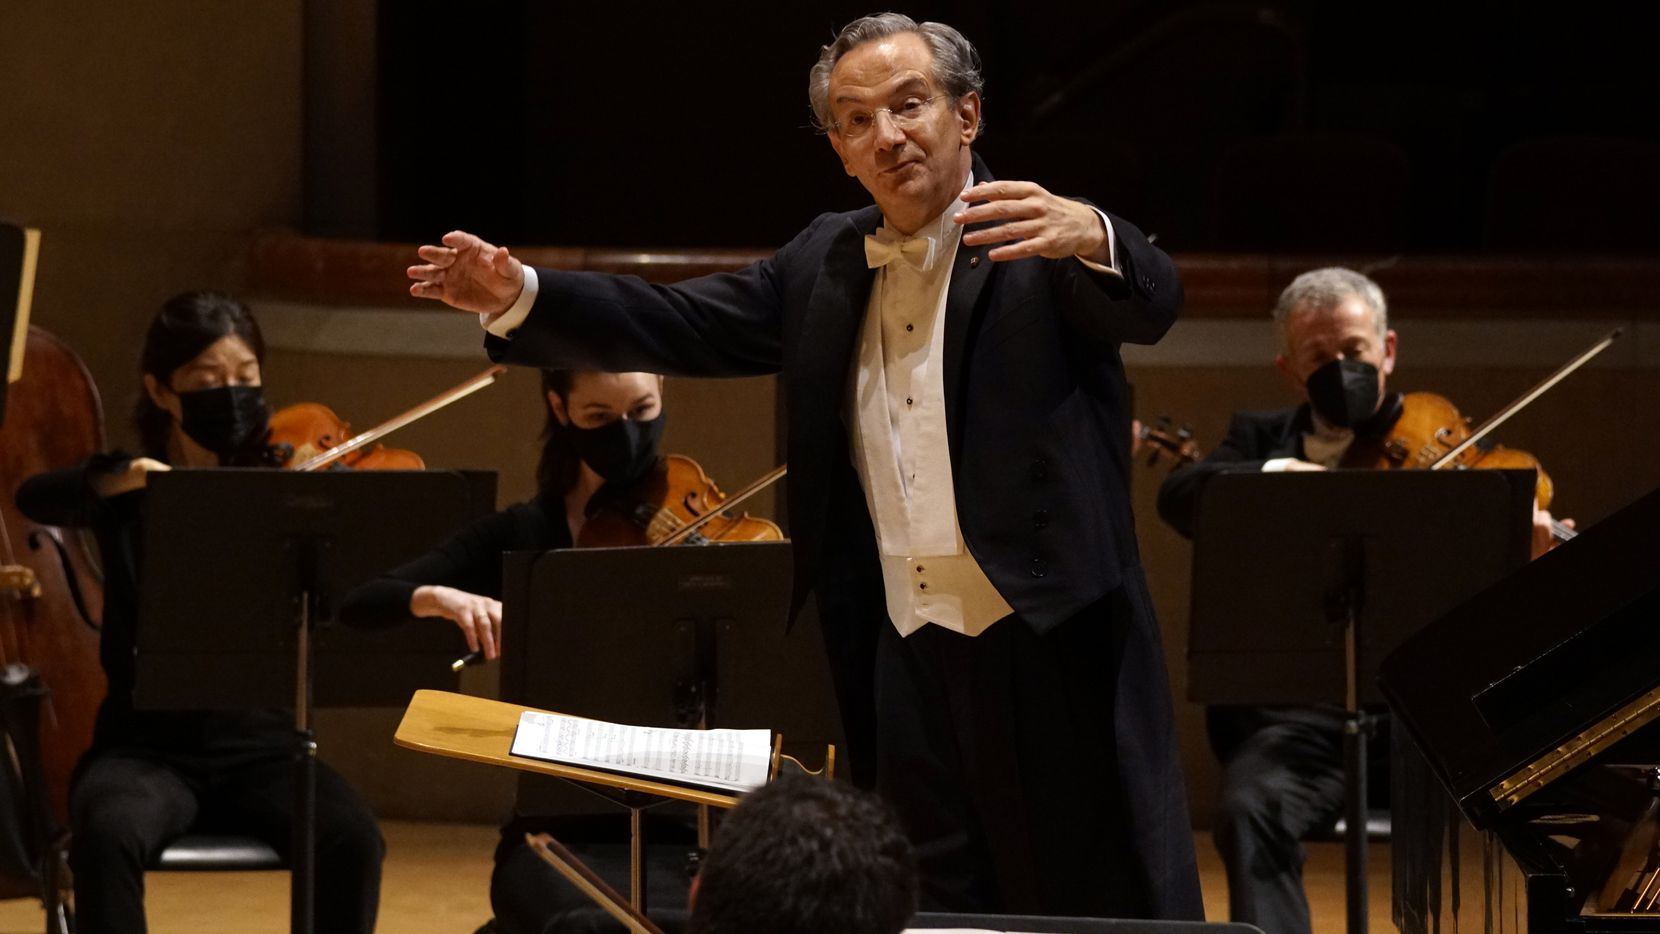 Conductor Fabio Luisi directed the Dallas Symphony Orchestra at the Meyerson Symphony Center in Dallas on April 1. The DSO will play a free outdoor concert at Paul Quinn College on June 15.